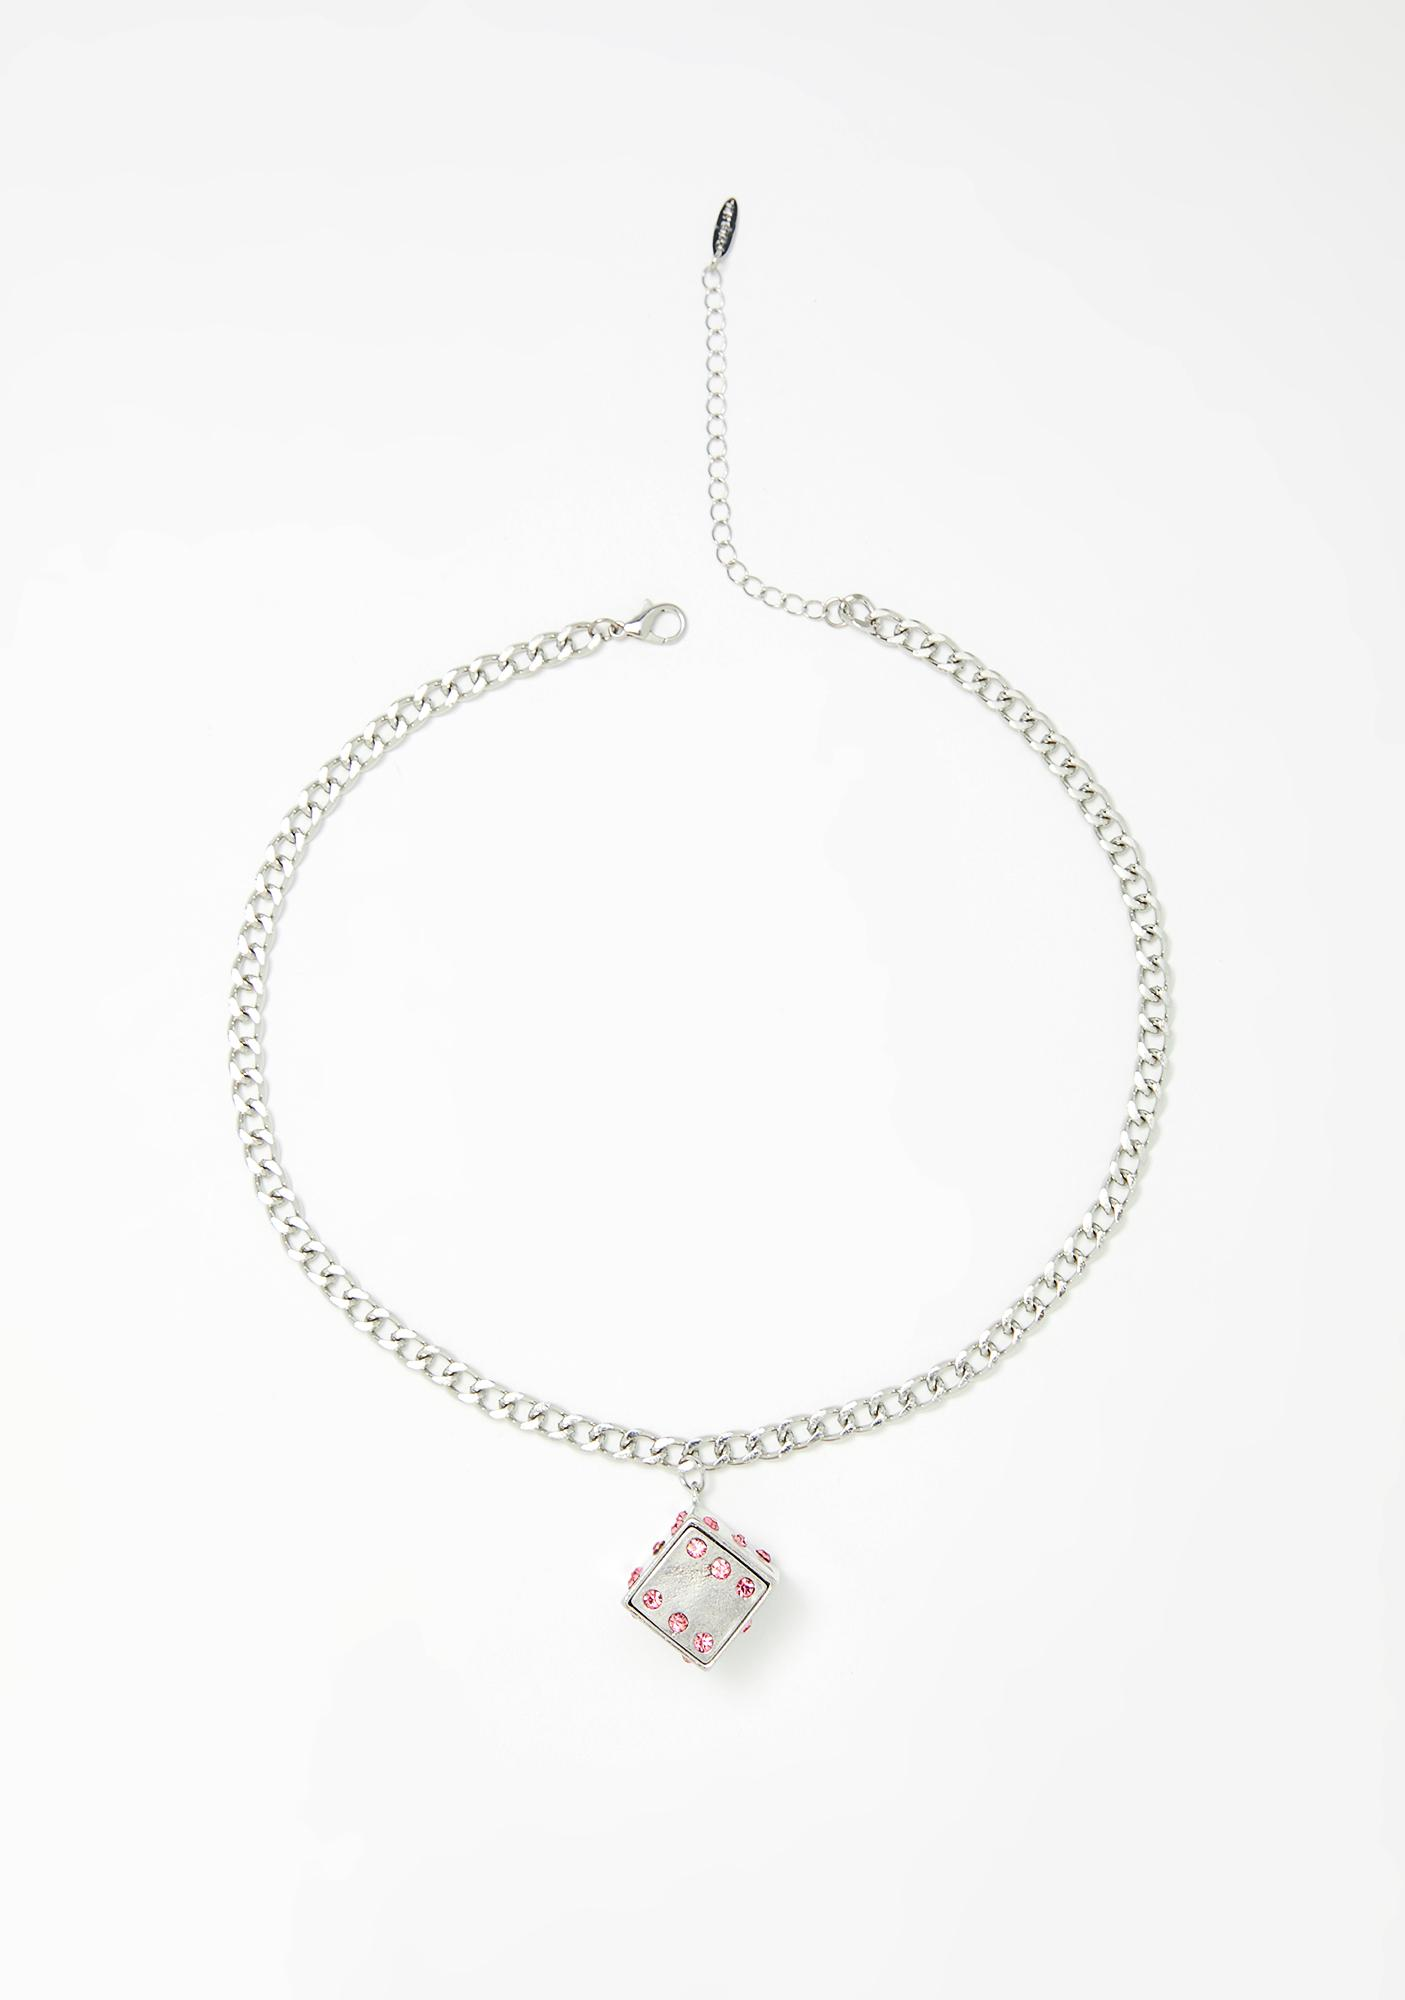 Lady Luck Dice Necklace